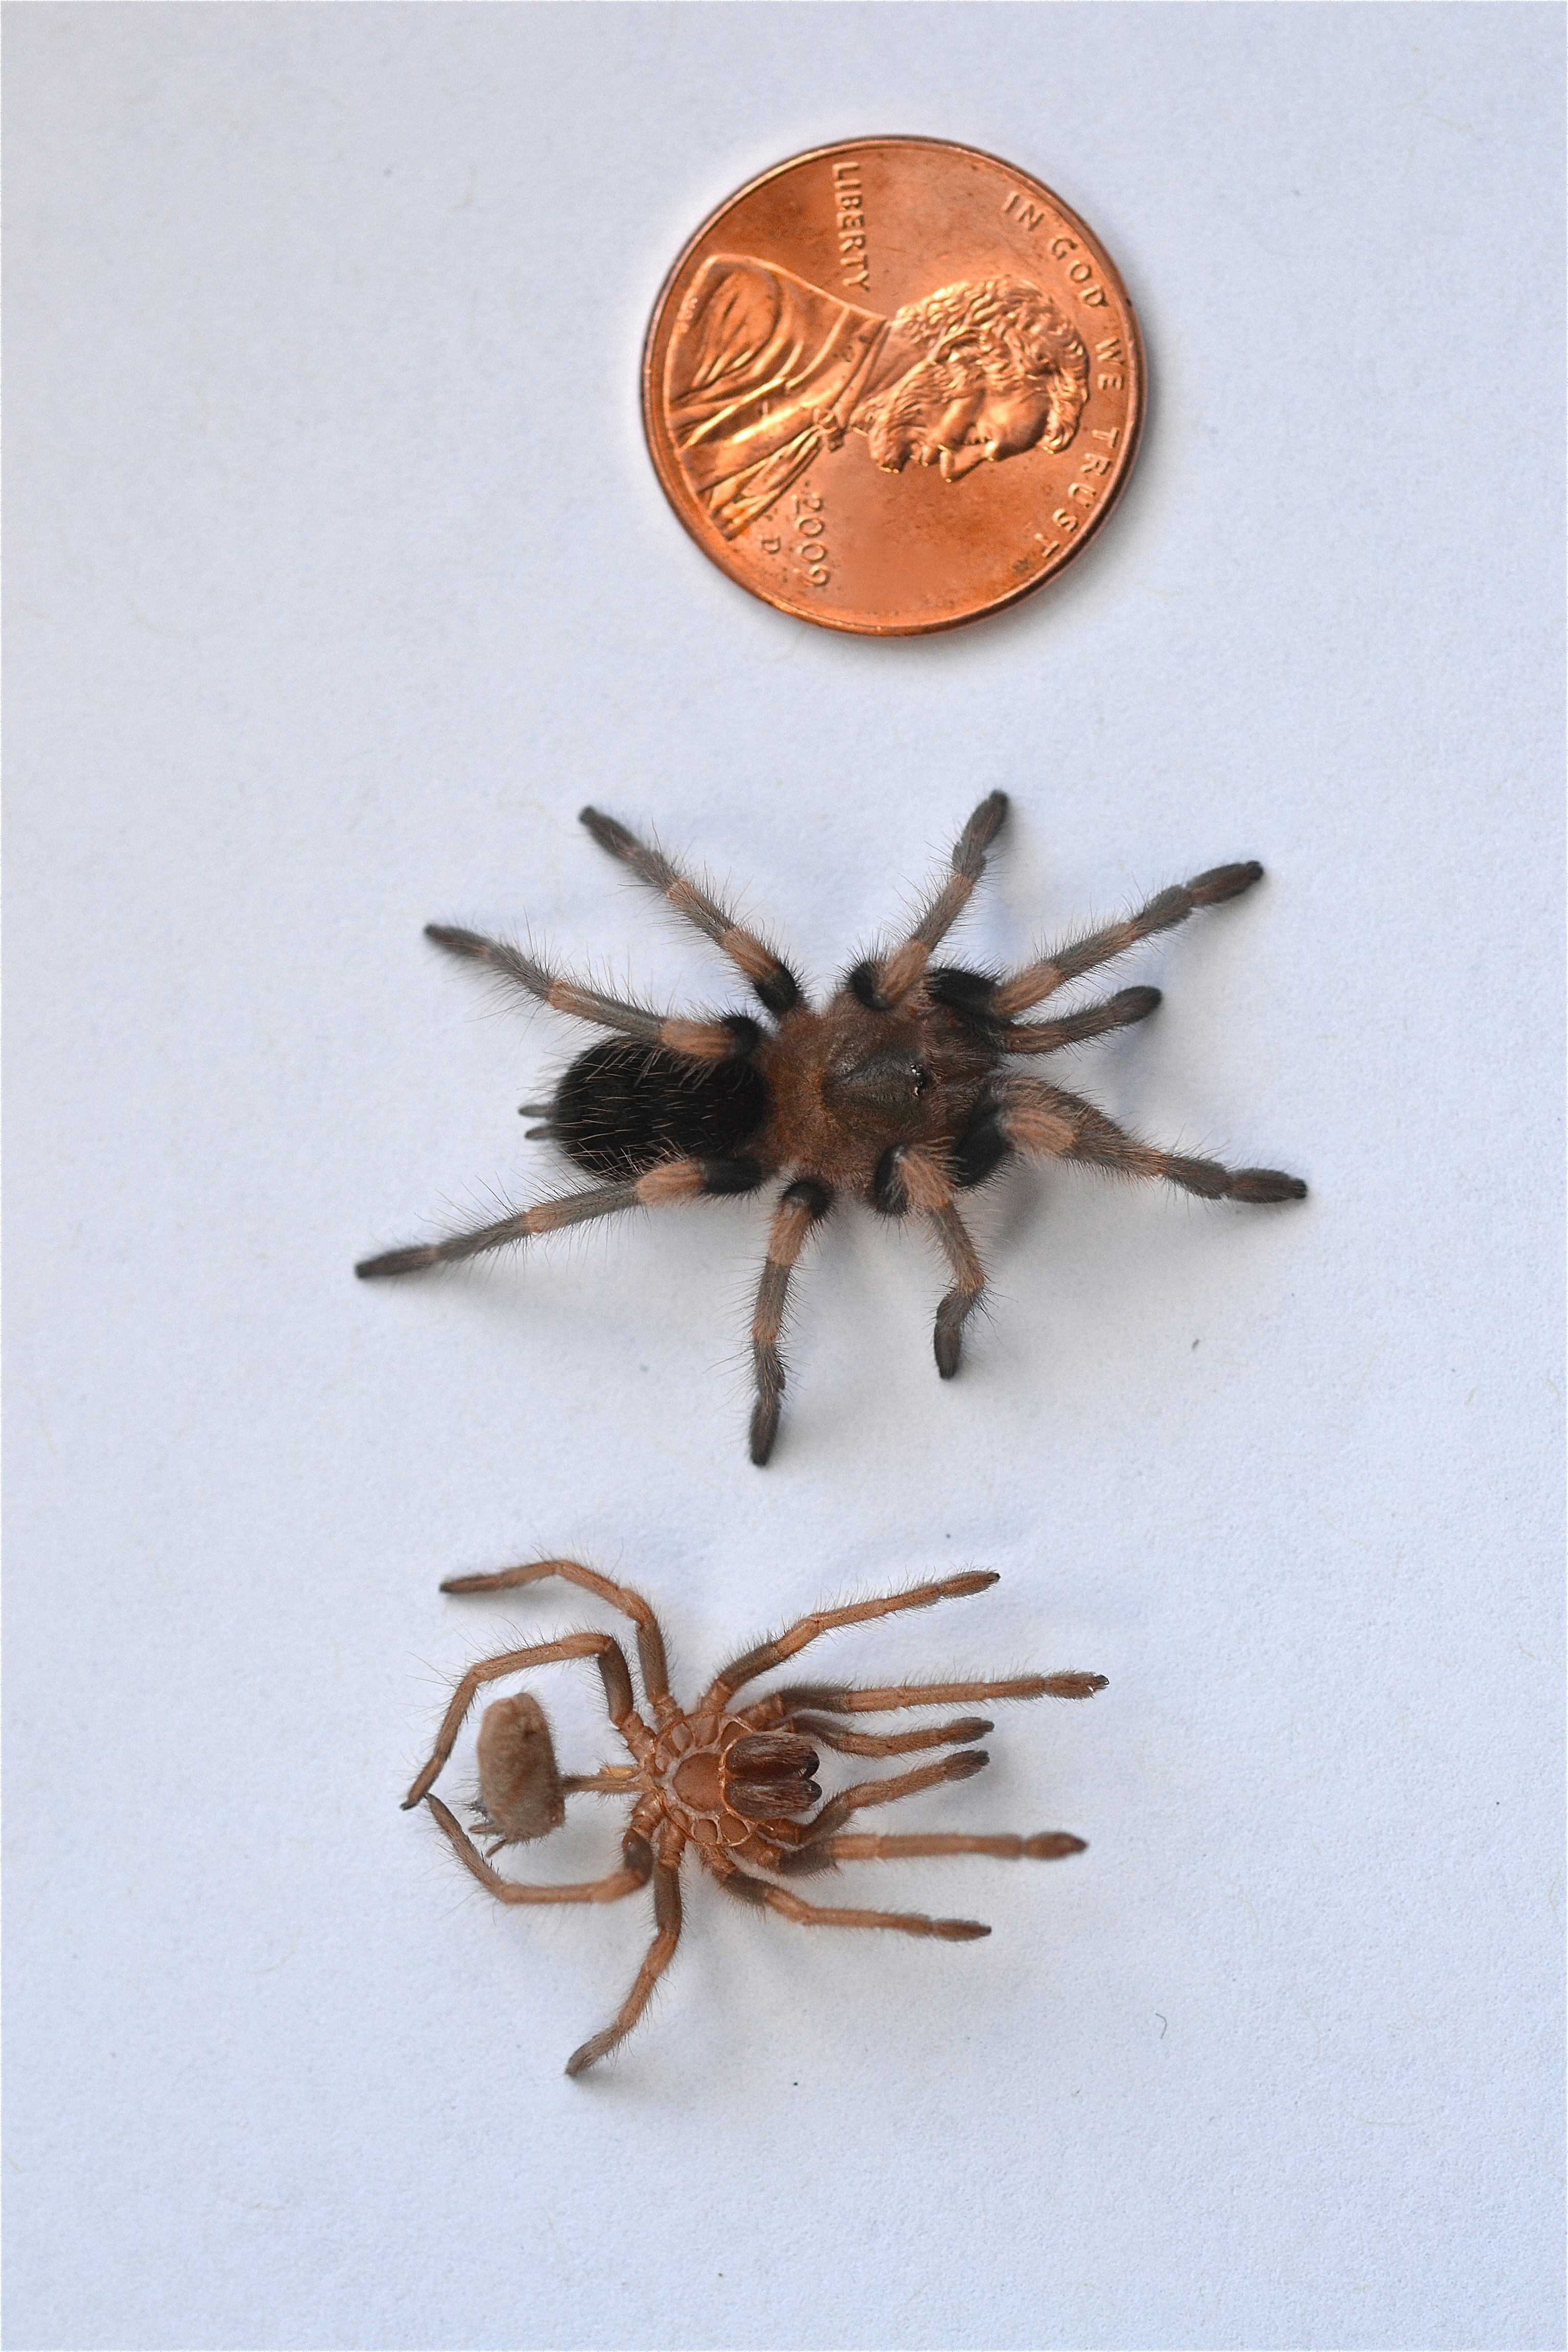 First Mexican red knee tarantula (chypelma smithi) molt ... on map where do tarantula, how long do tarantulas live, map of where camels are from, where do tarantulas live, map where do lizards live on a glass, map of brown recluse spiders in the us, map of arkansas, were tarantula live, map where do praying mantis live, map of mississippi natural resources, maps of where the brown widows live, map of tarantulas in us, map of tarantula hawk wasp,